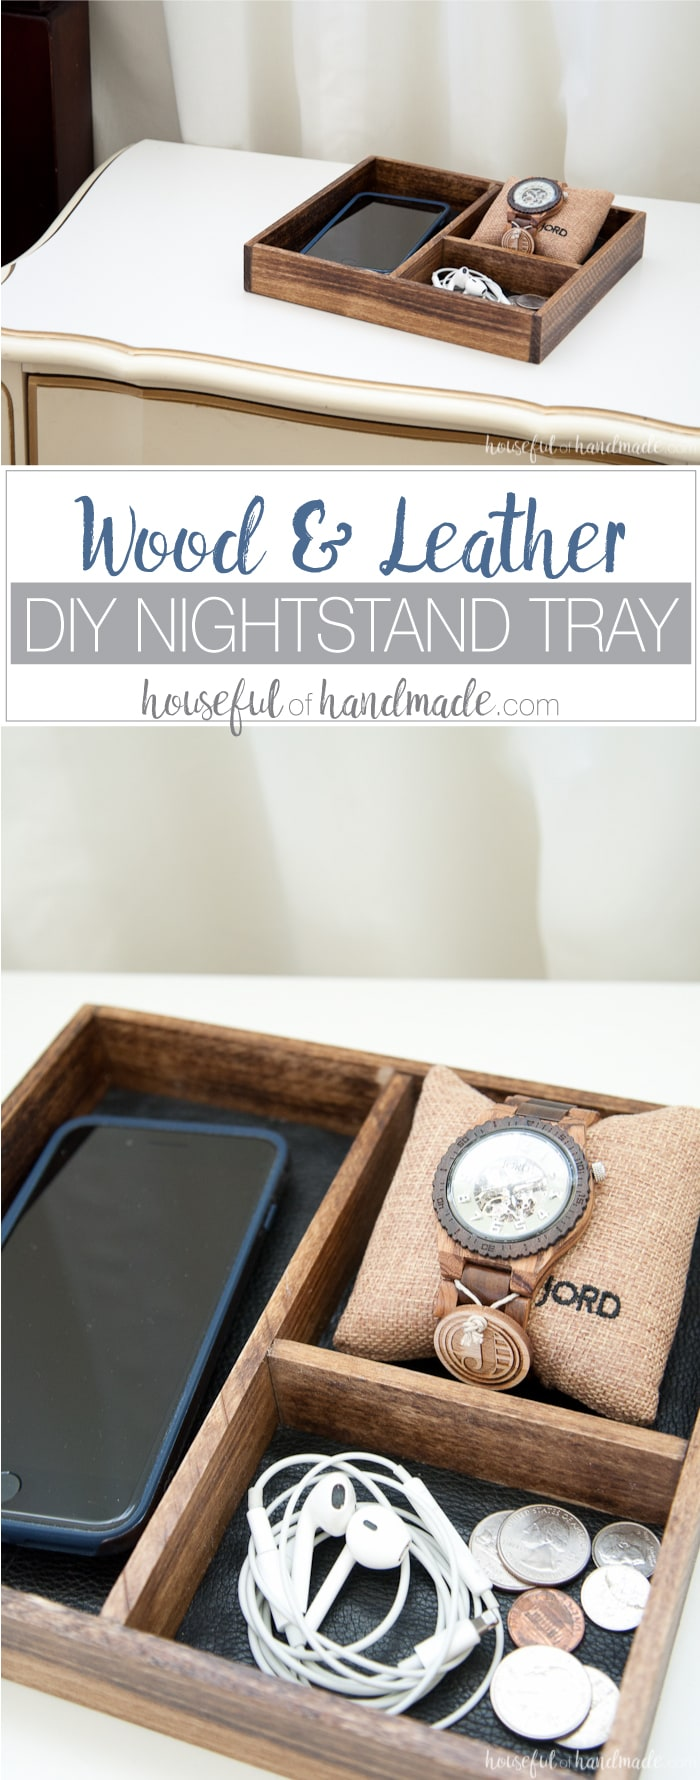 Celebrate the man in your life with these perfect anniversary gifts for him. A DIY wood and leather nightstand tray for him to unload his pockets into. And to make it extra special, fill it with a beautiful wood watch so he will think of you whenever he checks the time. Housefulofhandmade.com | Gifts for Dad | Gift Ideas for Him | DIY gift ideas | Men's Watch | DIY Nightstand Tray | DIYI Catchall Tray